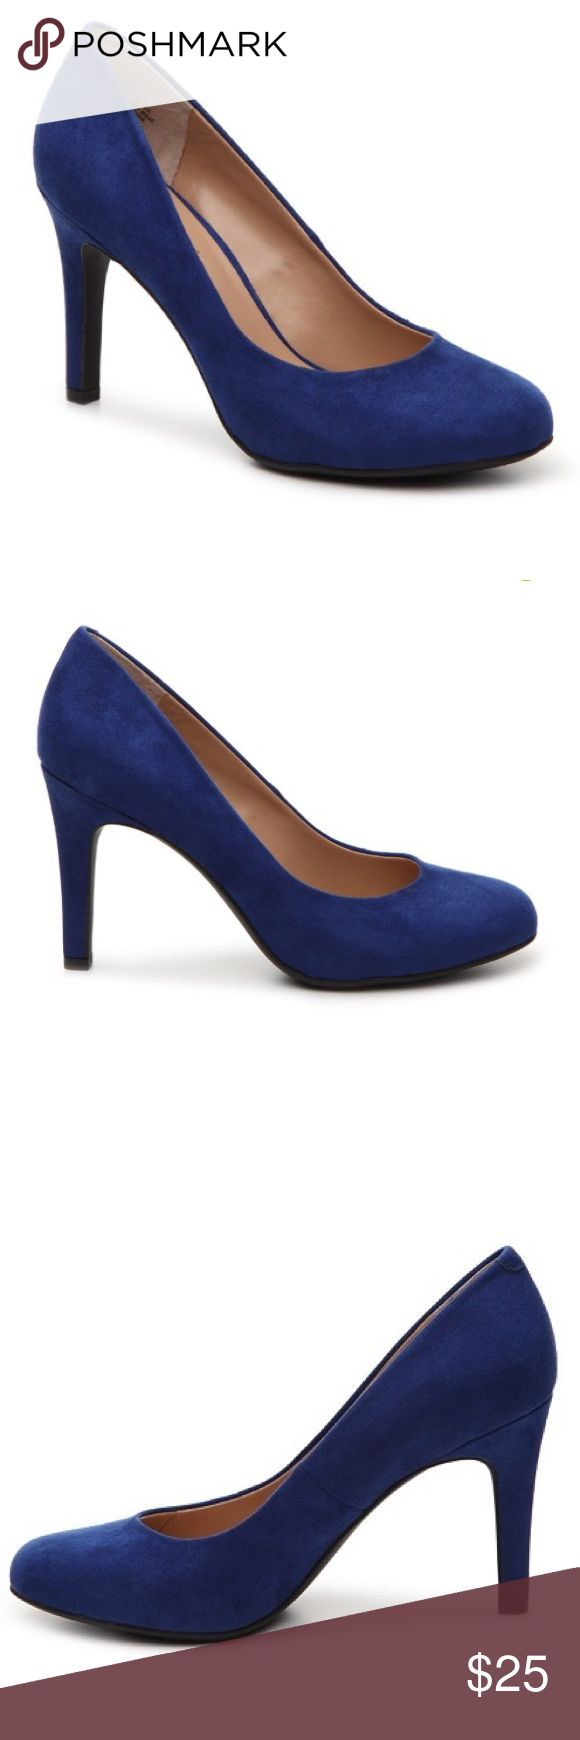 New Kelly & Katie Cobalt Blue Suede Pumps, Size 6 Brand new. Kelly & Katie Shoes Heels